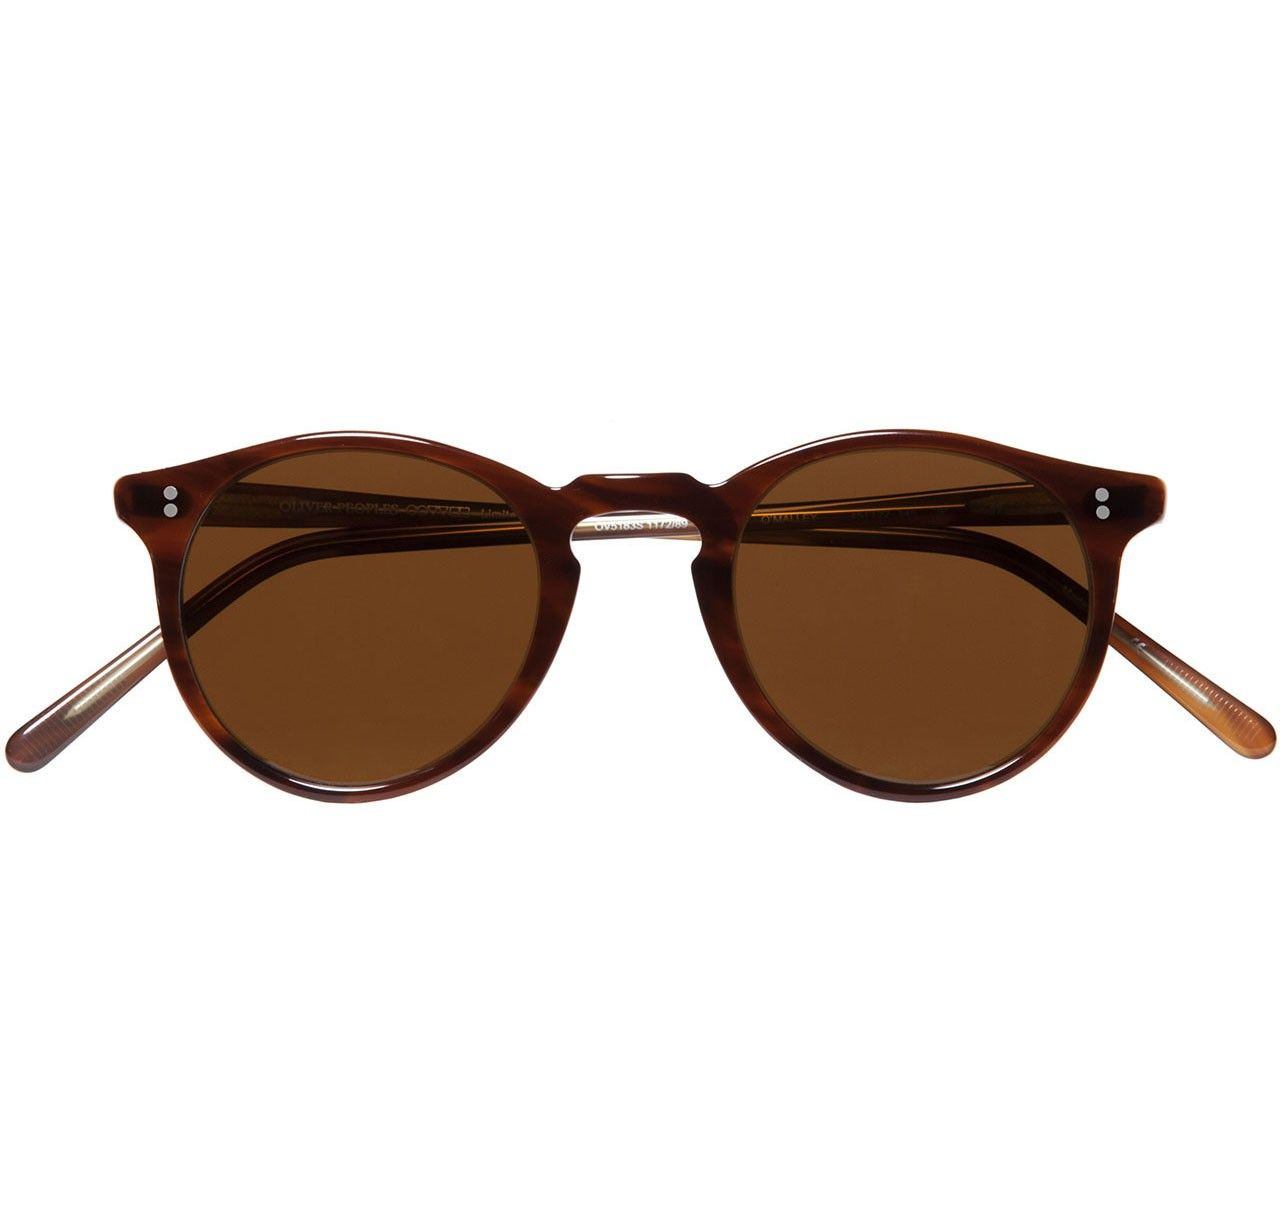 098b8de7c46 SIR JACK S - Oliver Peoples O Malley Sun Brown Tortoise Cream with Super  Brown Polar